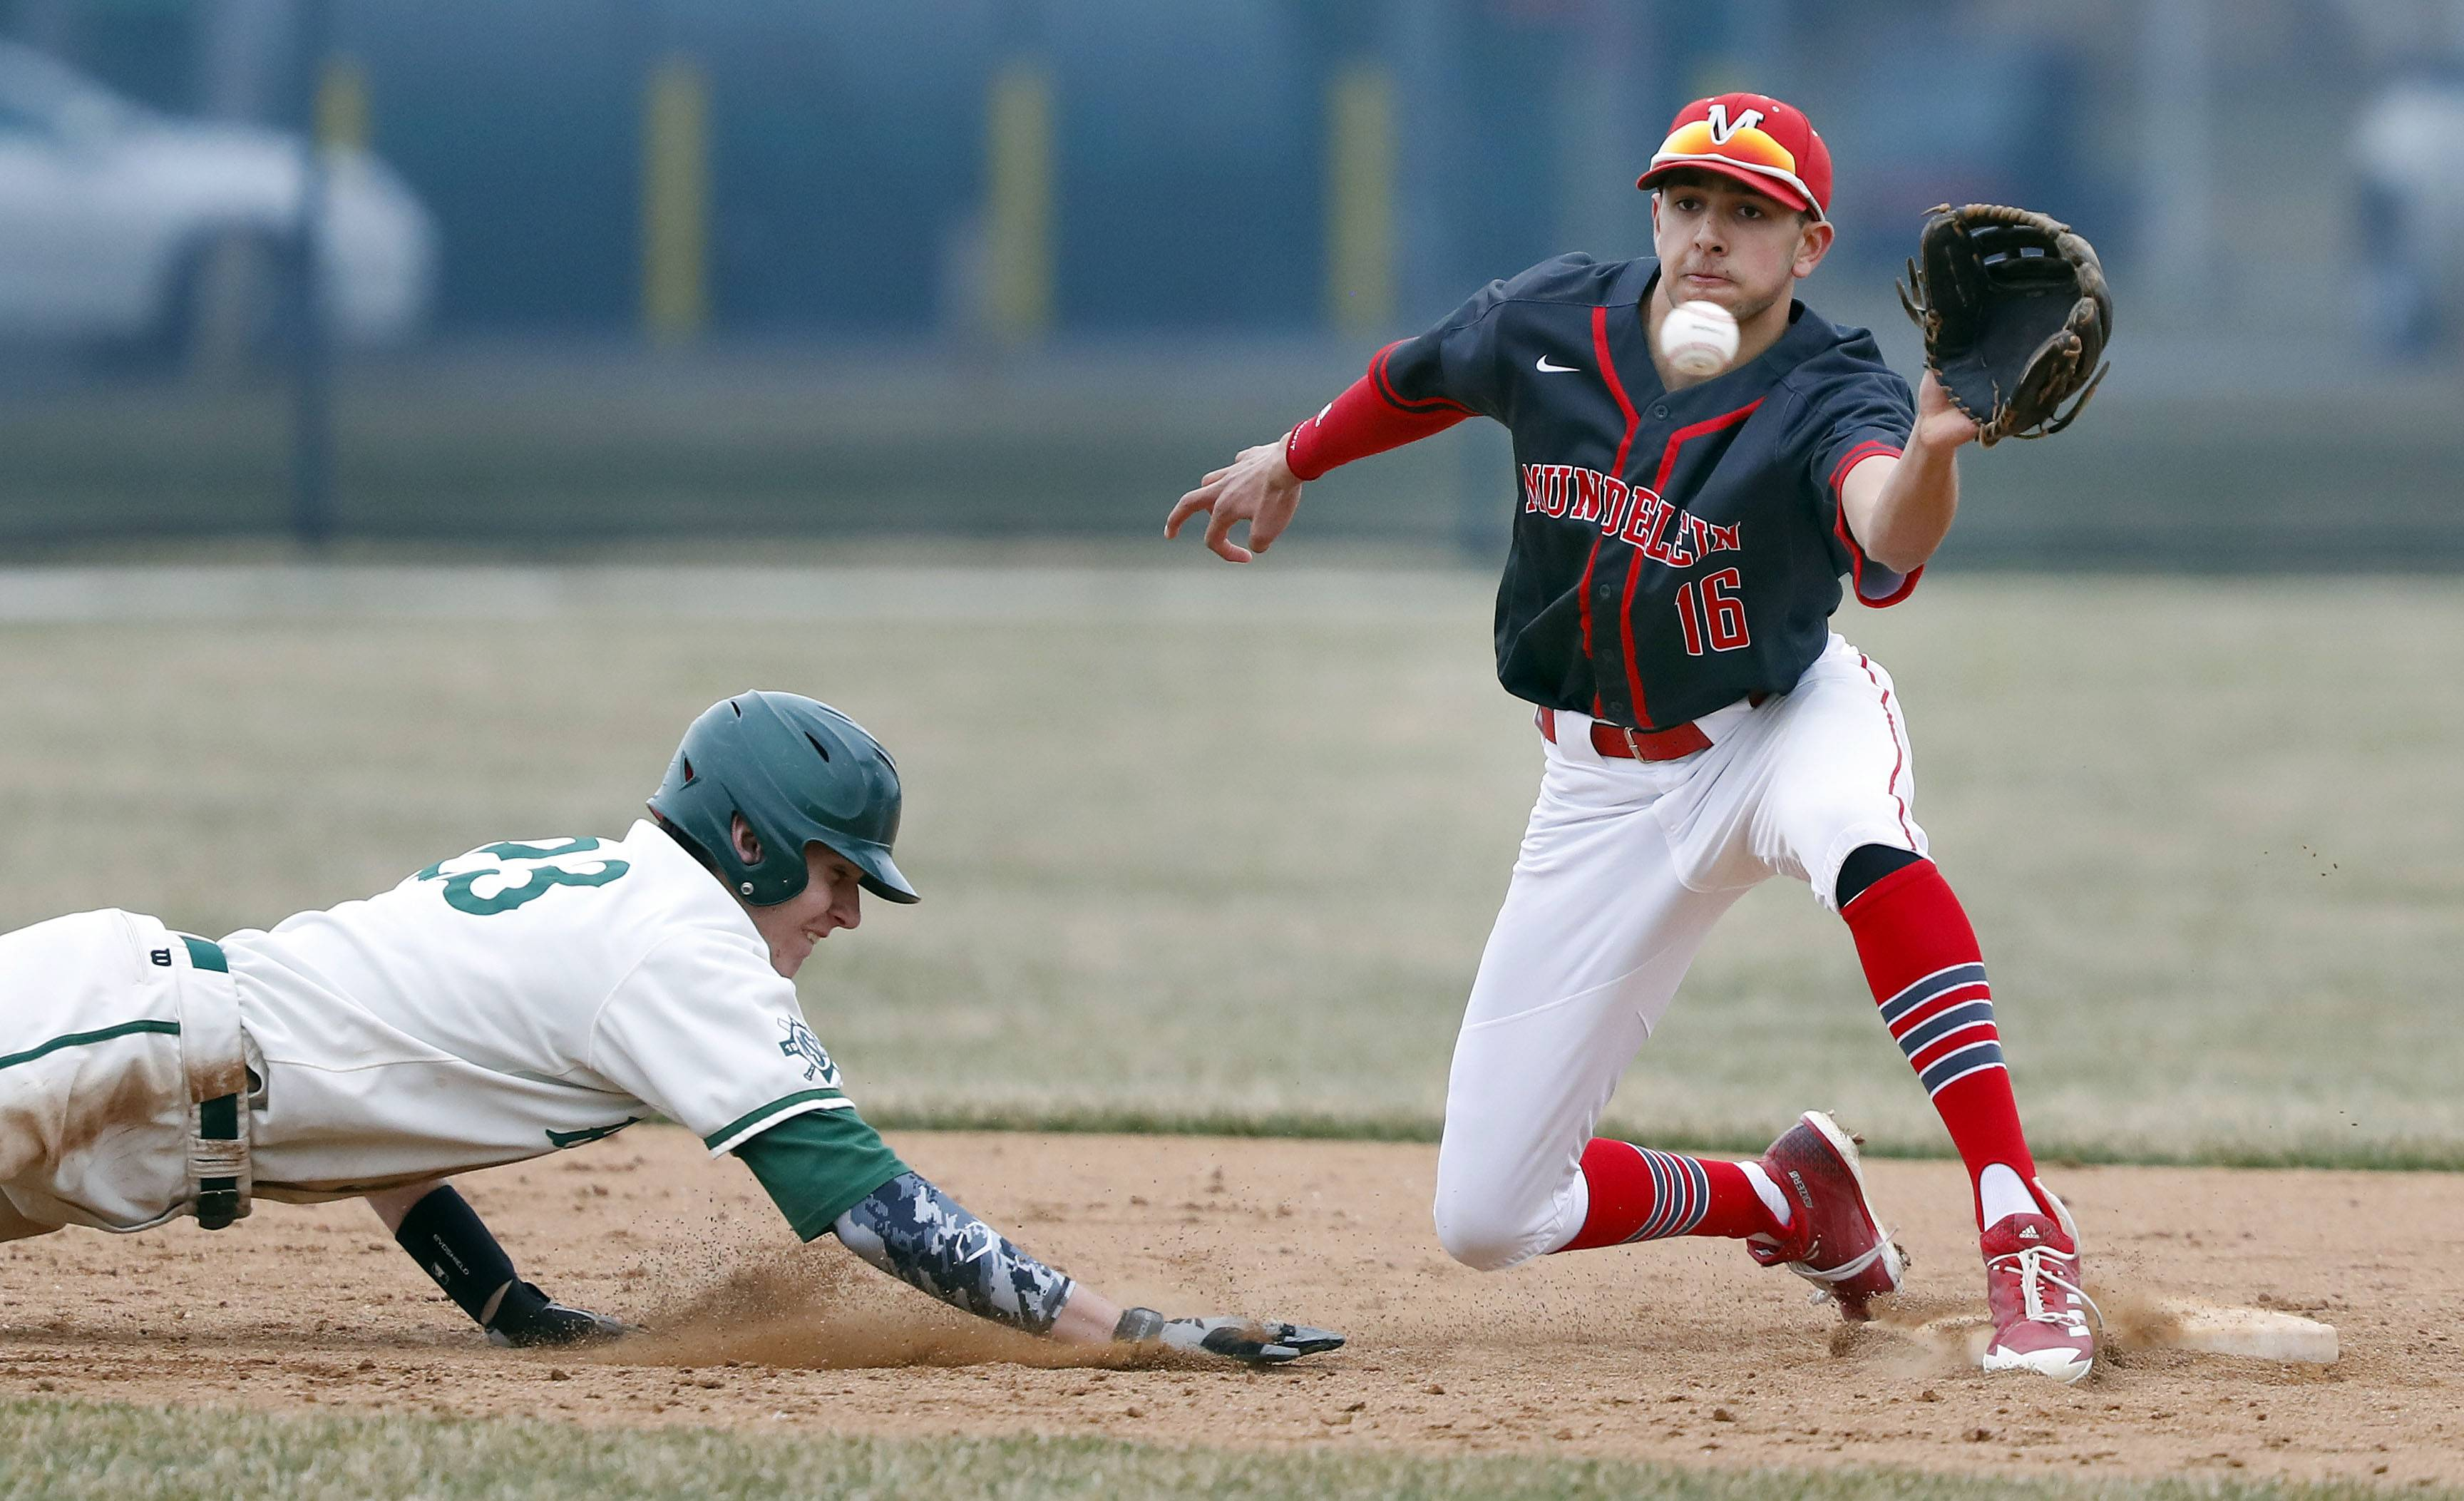 Stevenson's Nicholas Bonk dives back to second safely as Mundelein's Ryan Patel makes the play Wednesday in Lincolnshire.